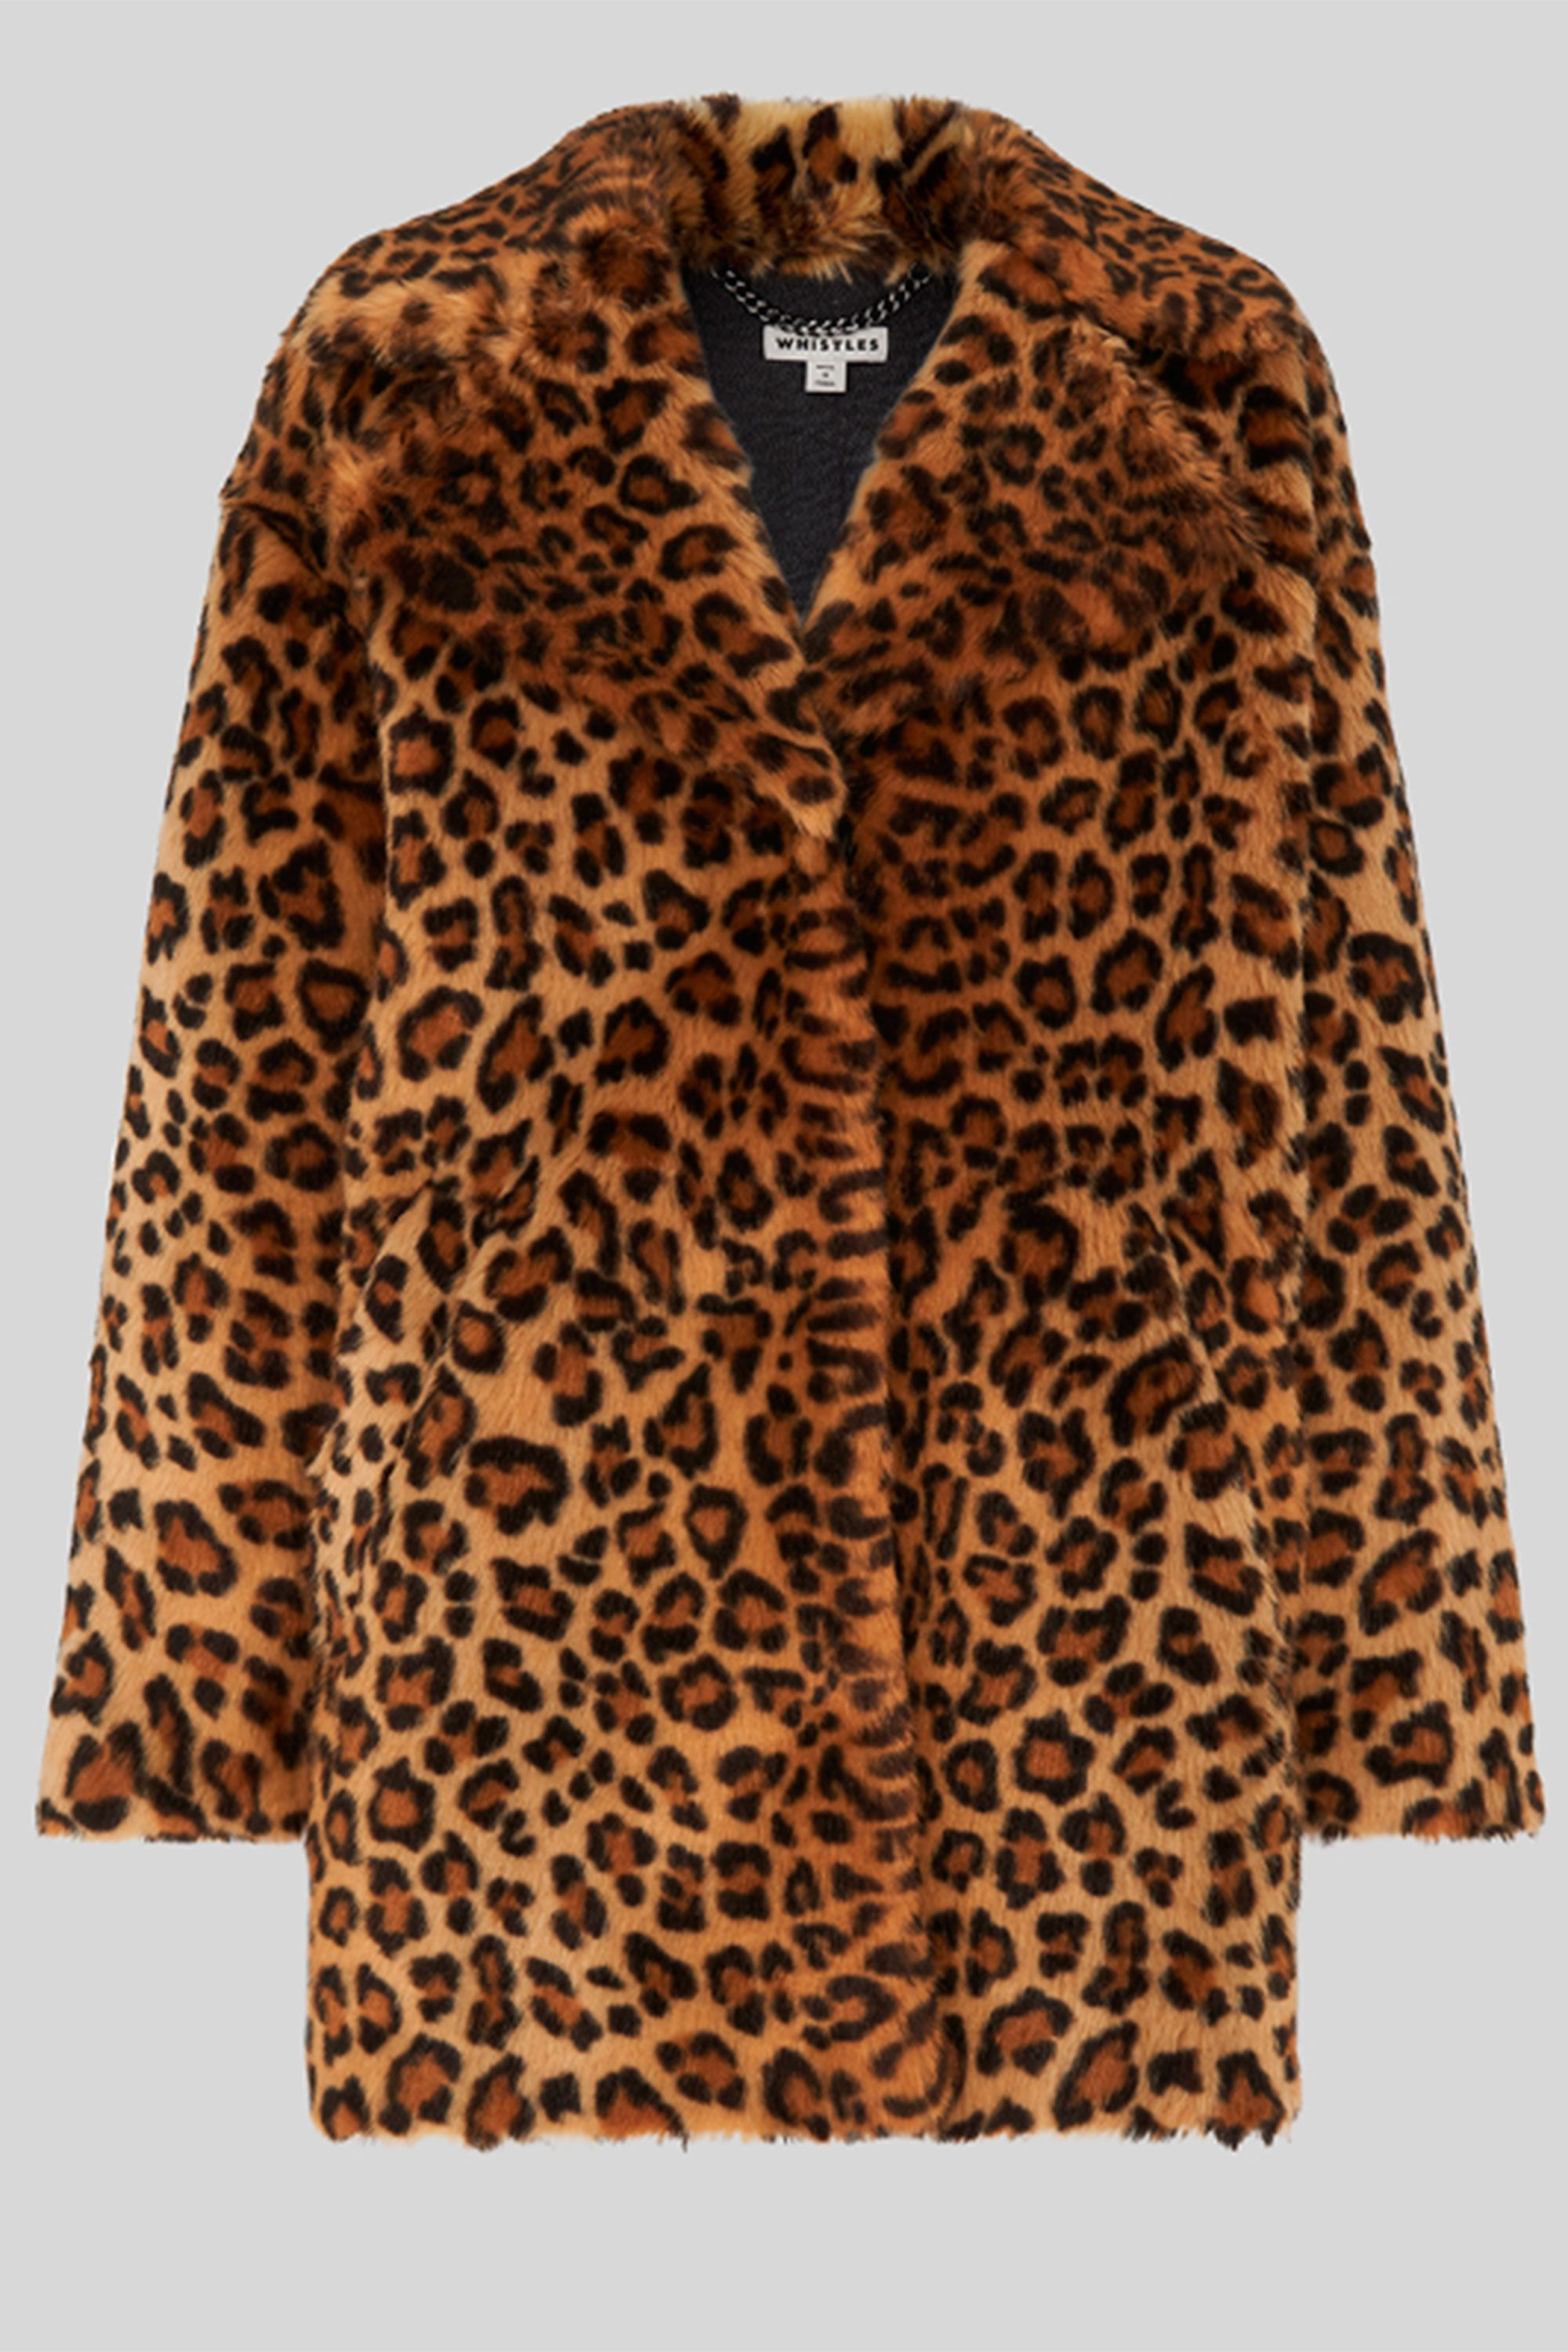 17ffc26f77 The best leopard-print coats to buy this winter – Leopard coats to wear  autumn winter 2018